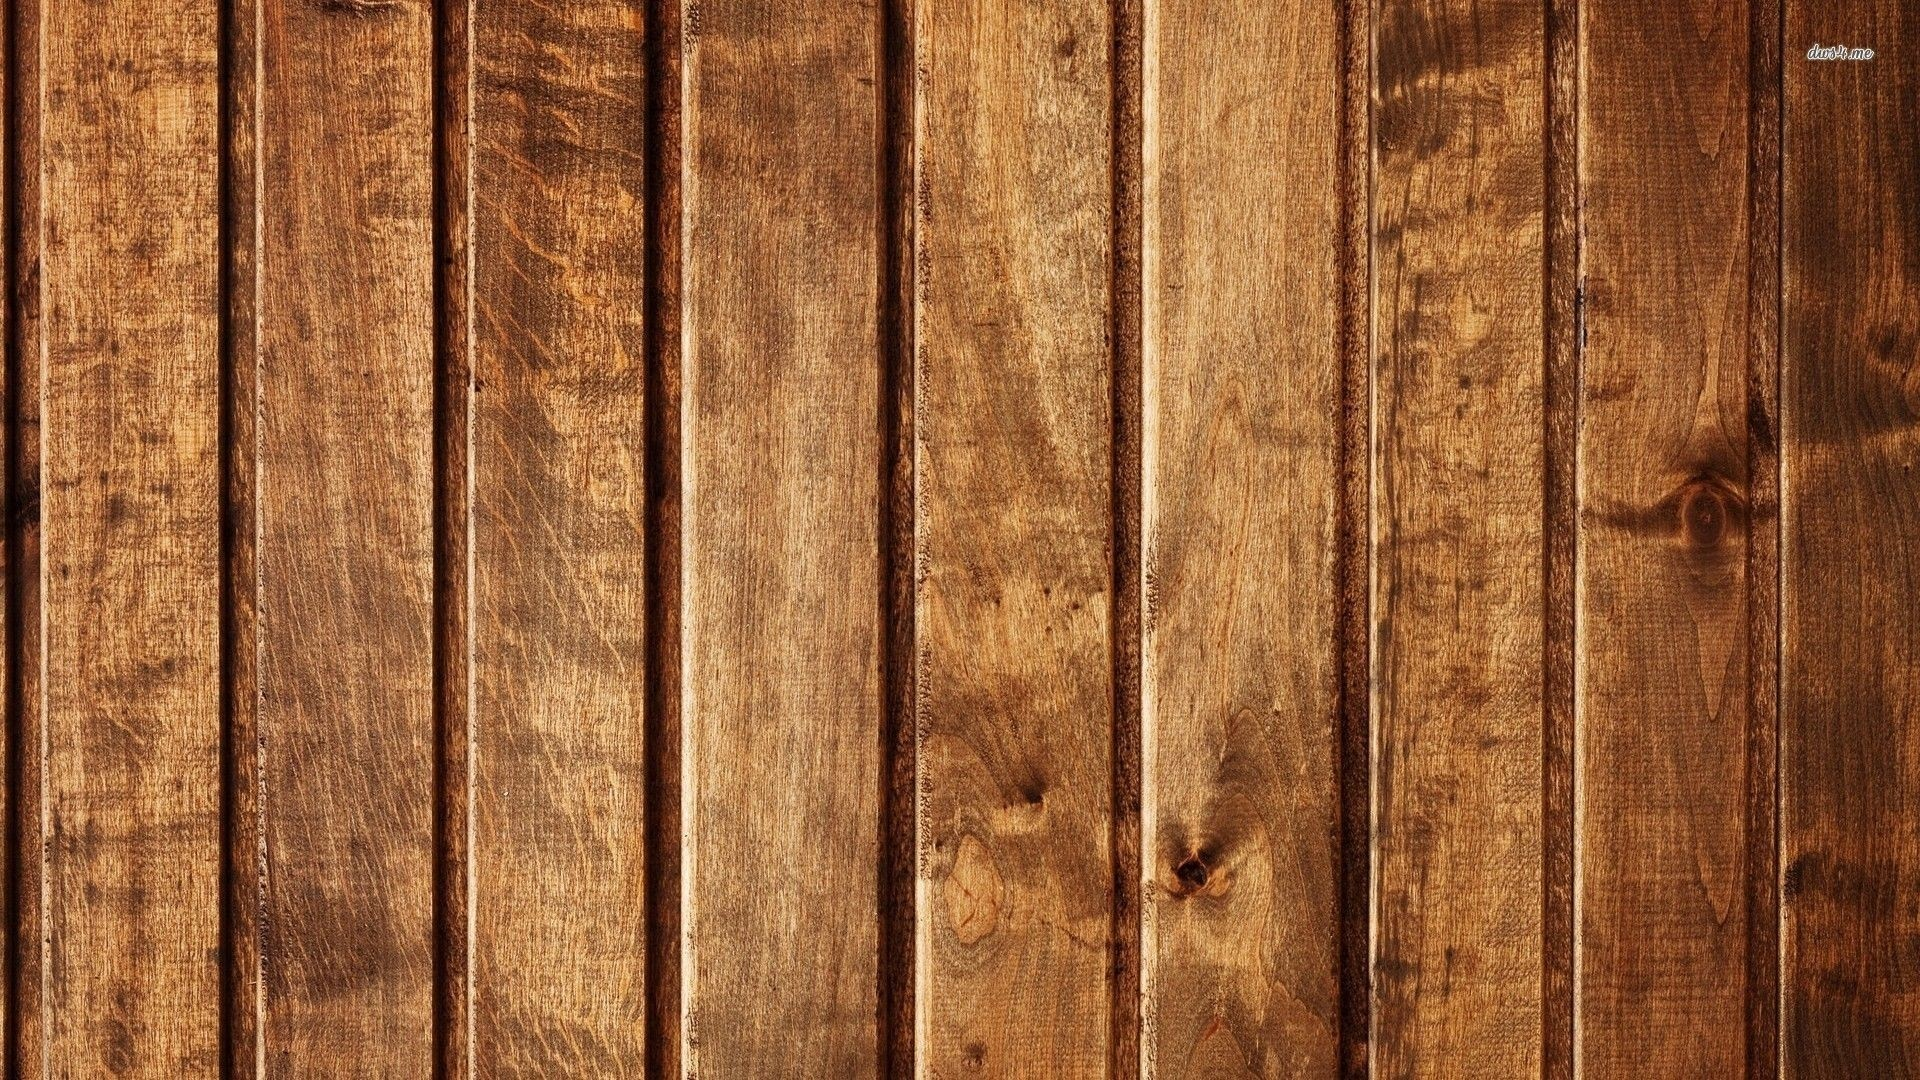 Wood Grain Wallpaper Picture hd